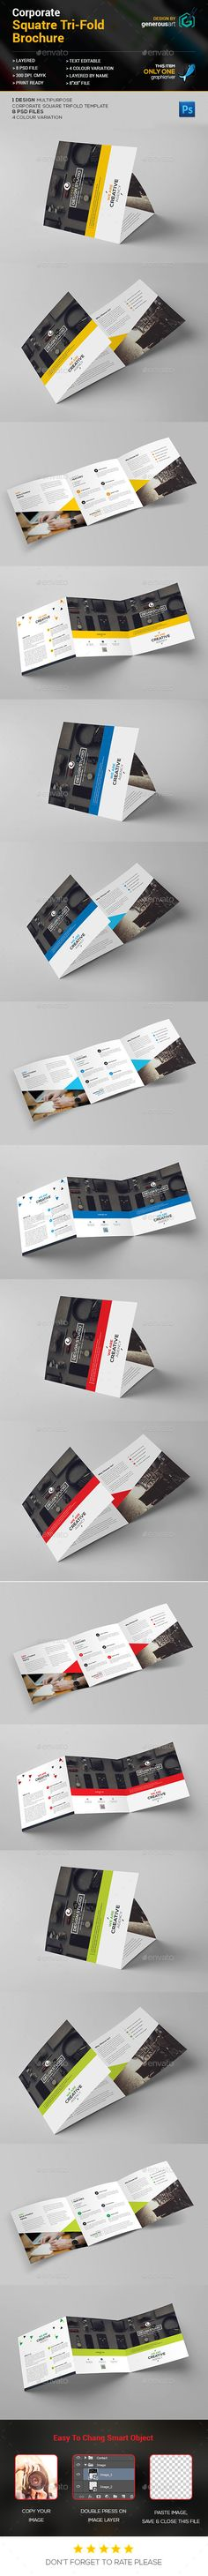 Square TriFold Brochure — Photoshop PSD #green #modern design • Available here → https://graphicriver.net/item/square-trifold-brochure/13957622?ref=pxcr